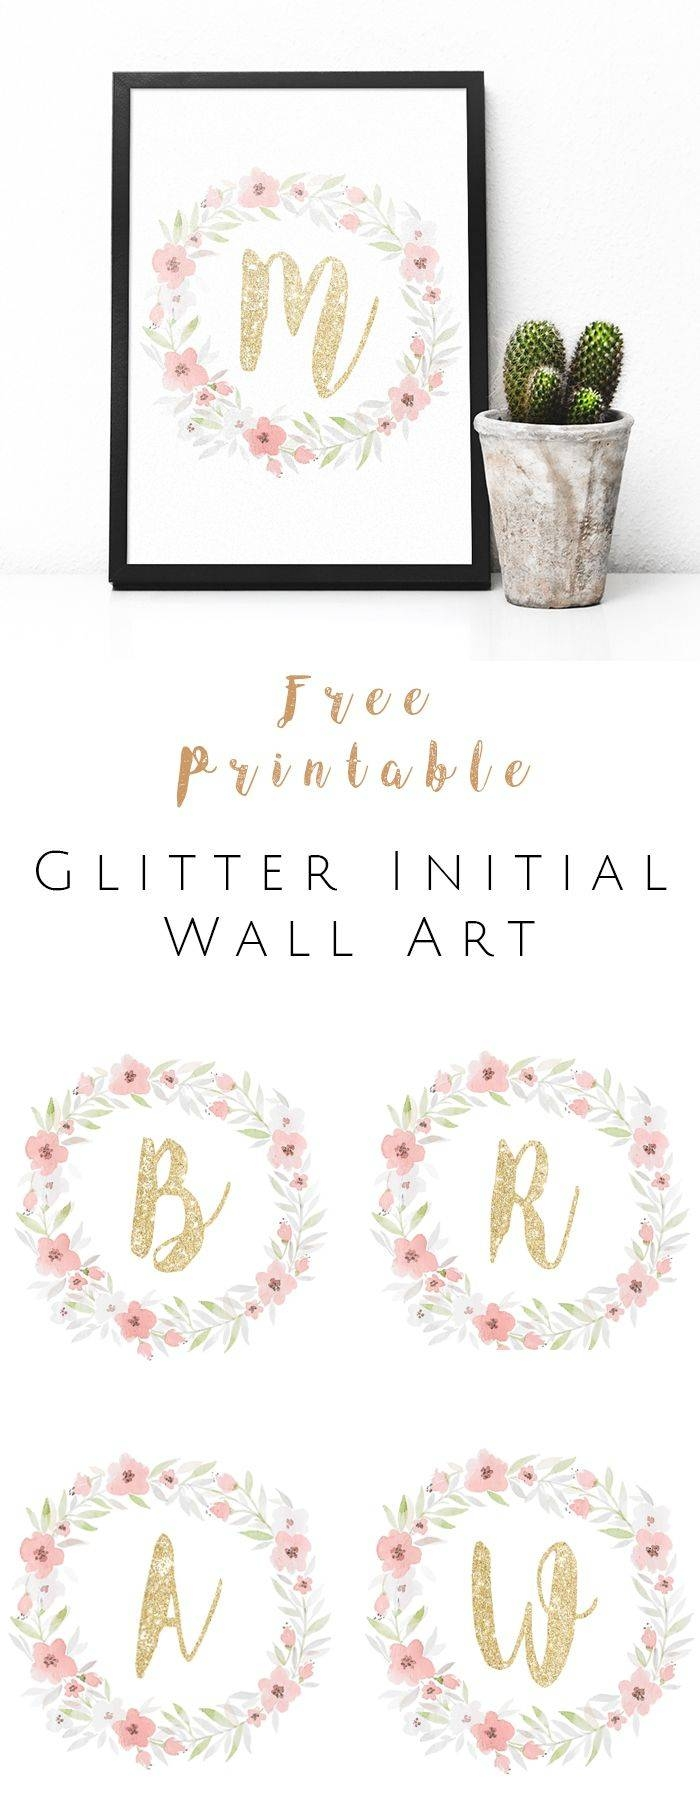 25+ Unique Monogram Wall Art Ideas On Pinterest | Monogram Wall For Most Recently Released Framed Monogram Wall Art (View 10 of 20)